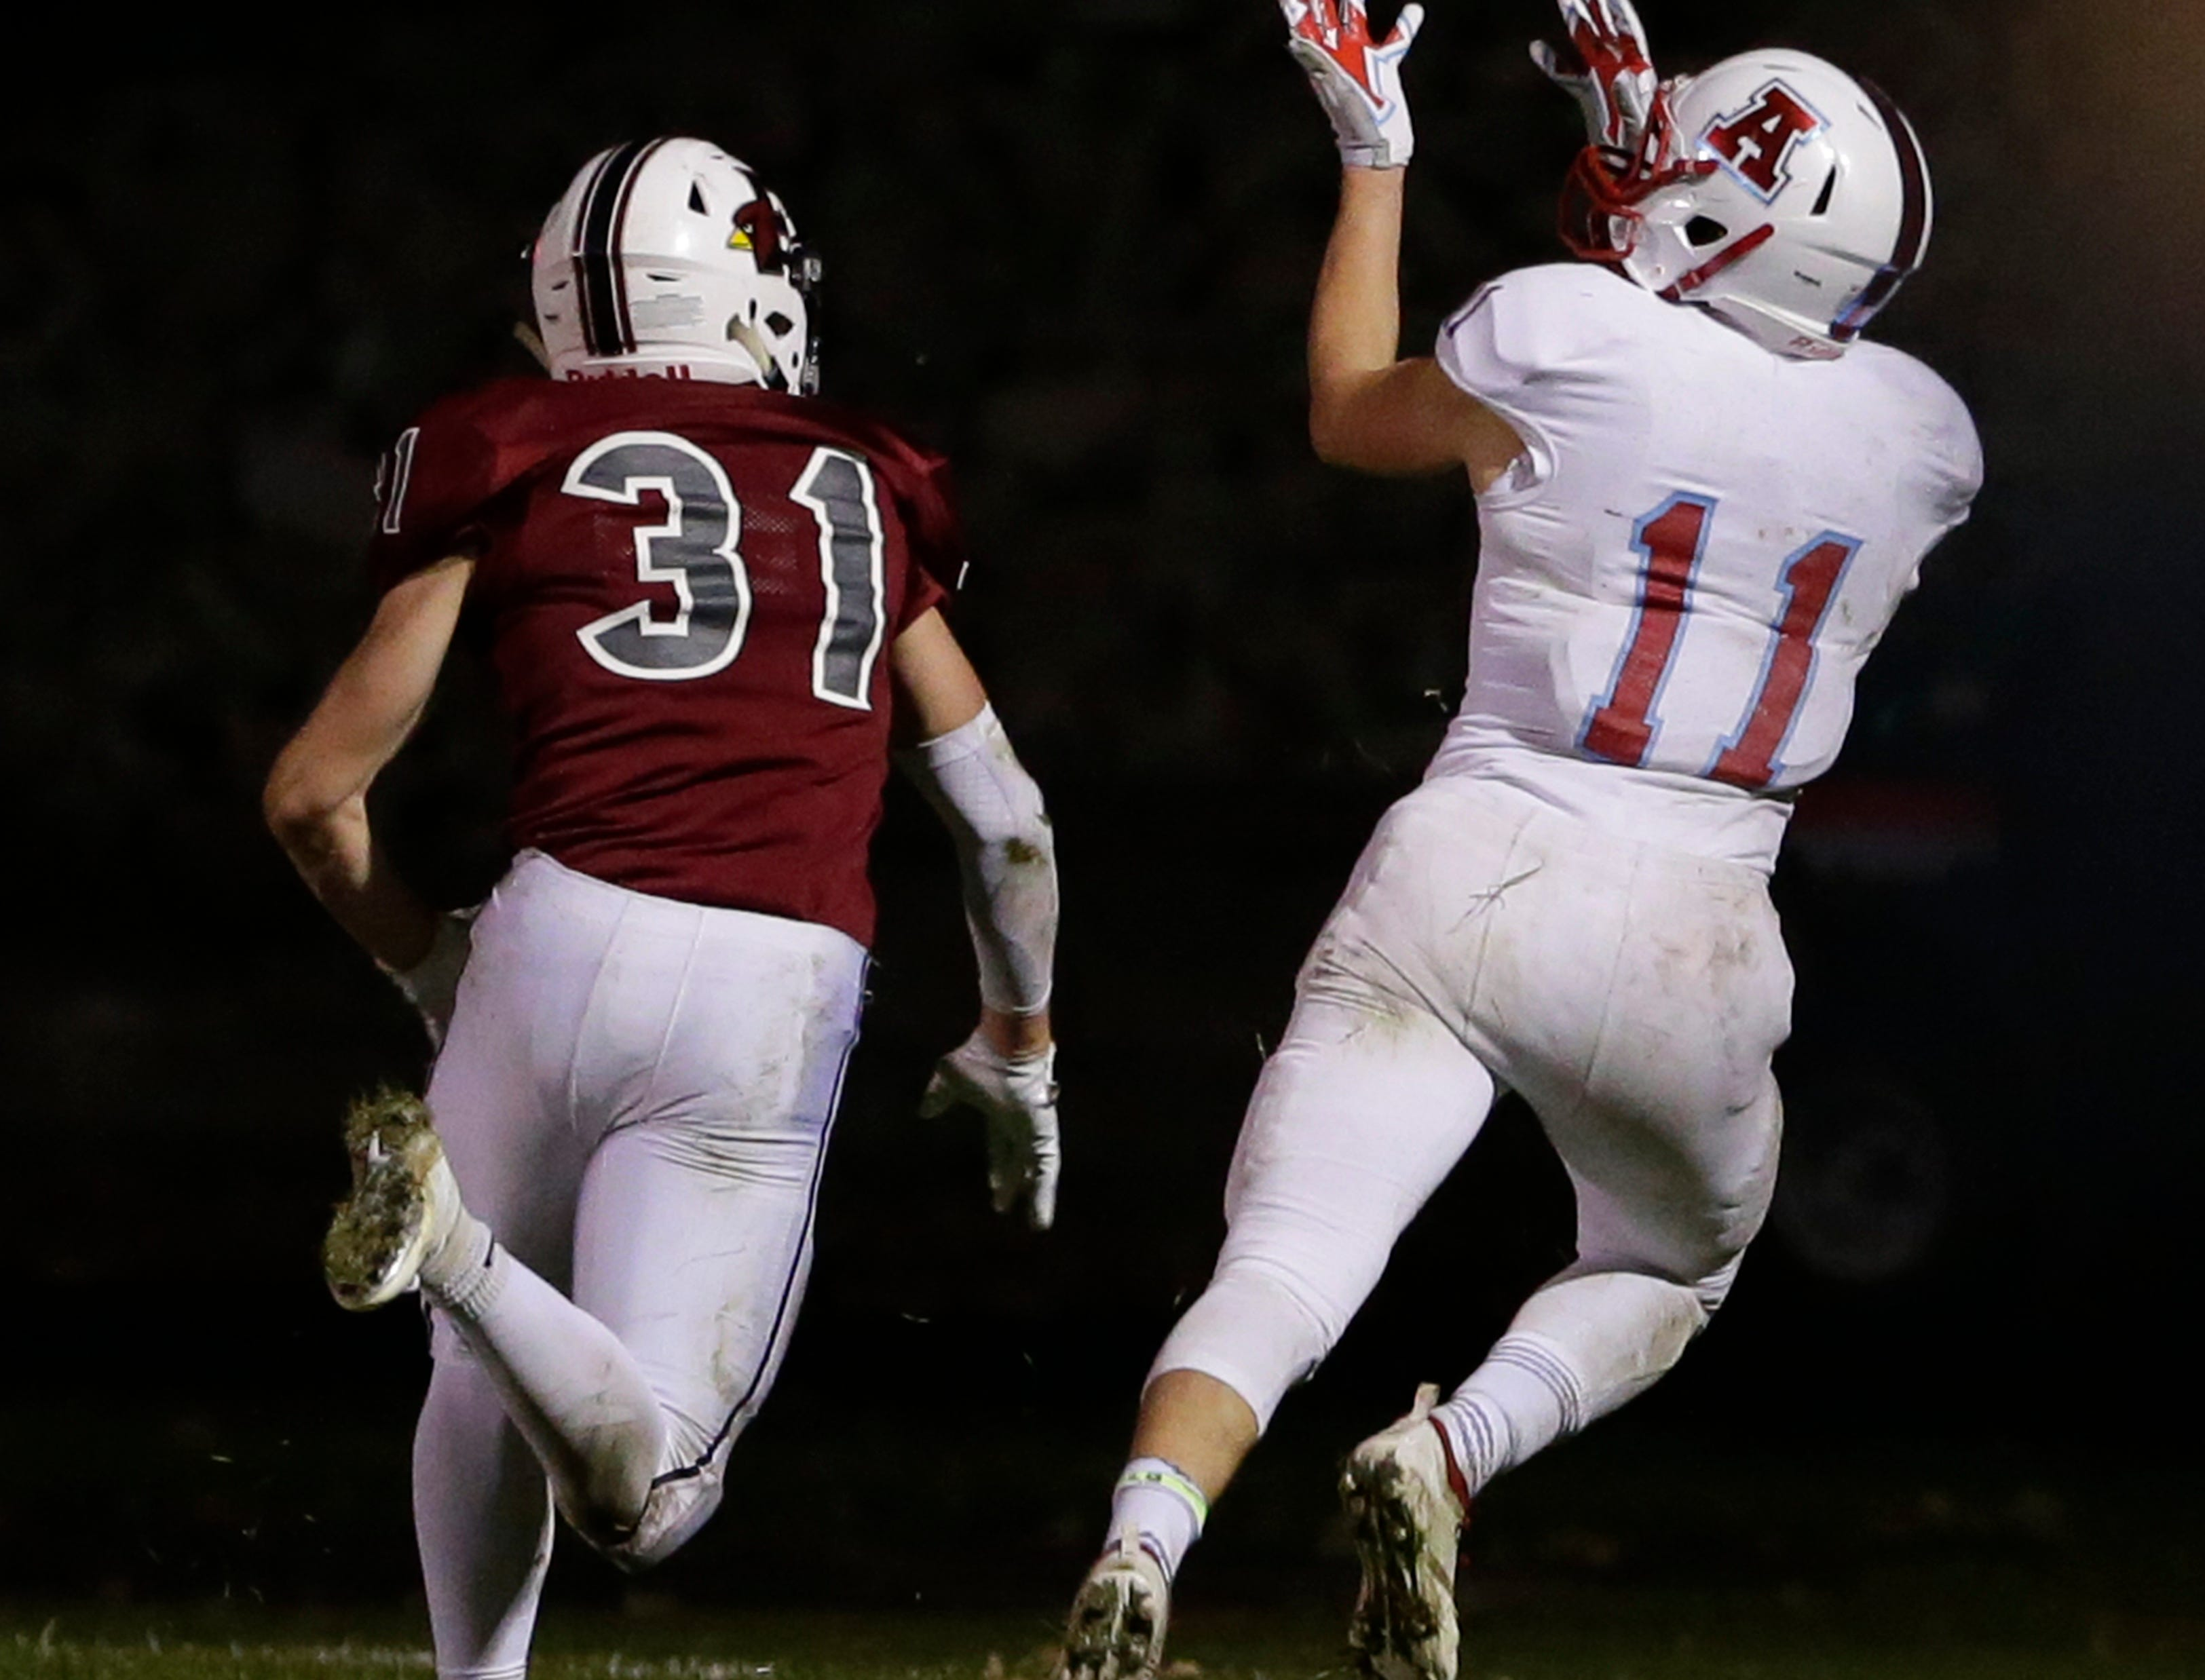 Arrowhead's Jacob Schleicher makes a catch during their game.  Fond du Lac Cardinals played Arrowhead Warhawks in WIAA football playoff sectionals, Friday, Oct. 26, 2018, at Fruth Field in Fond du Lac.  Fond du Lac won 28 - 22.Joe Sienkiewicz/USA Today NETWORK-Wisconsin